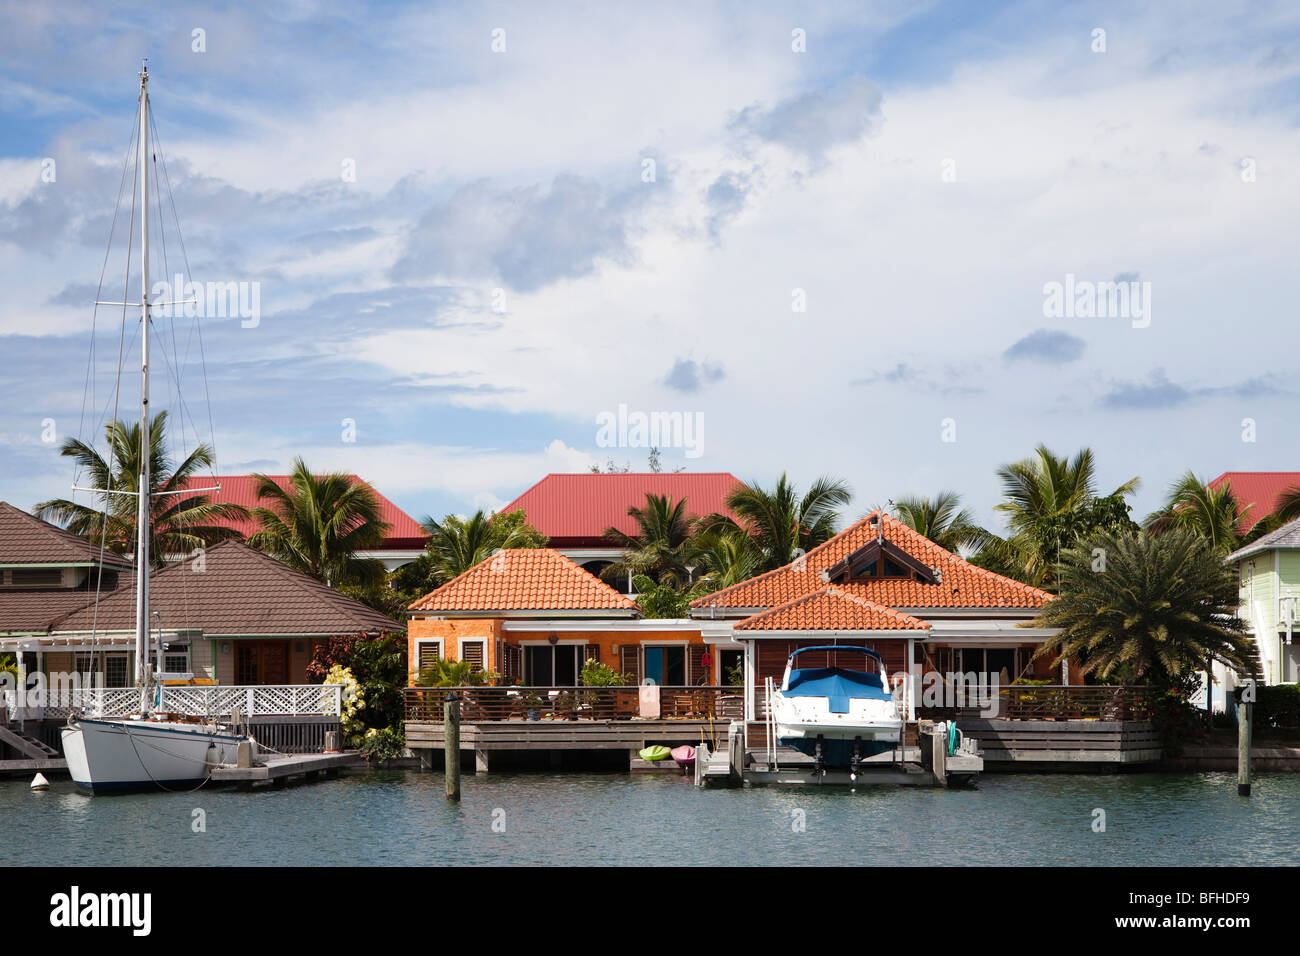 Harbourside houses at the marina in Jolly Harbour, Antigua, Caribbean, West Indies - Stock Image